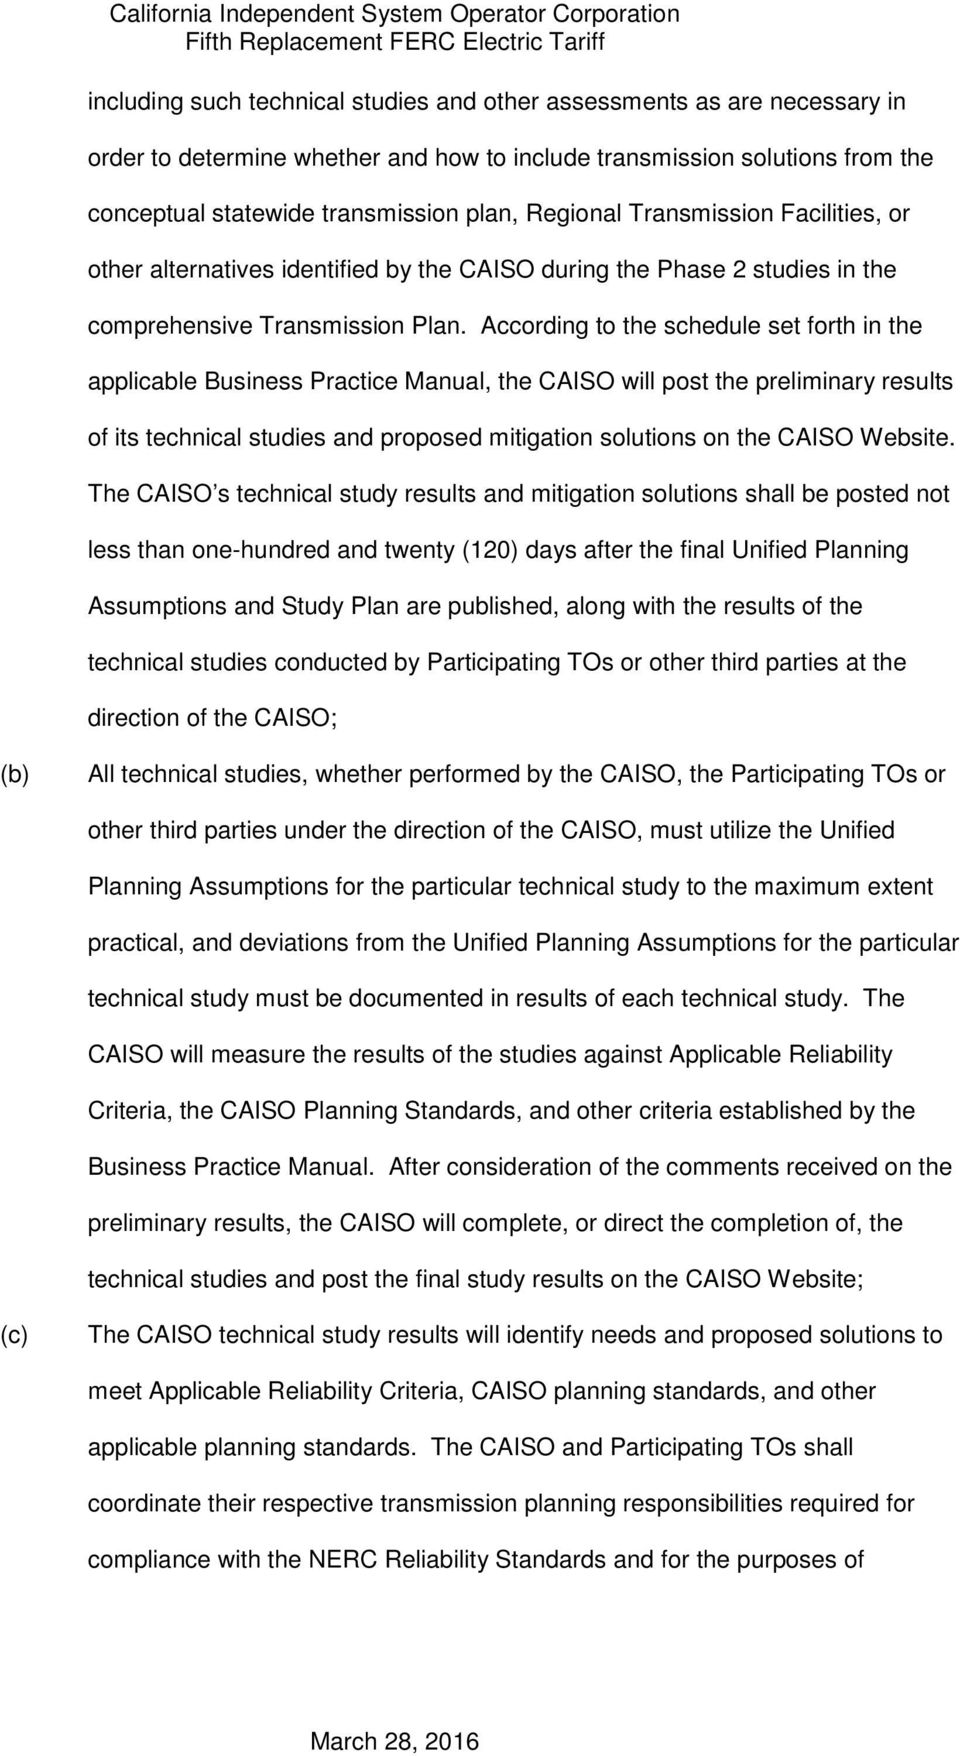 According to the schedule set forth in the applicable Business Practice Manual, the CAISO will post the preliminary results of its technical studies and proposed mitigation solutions on the CAISO